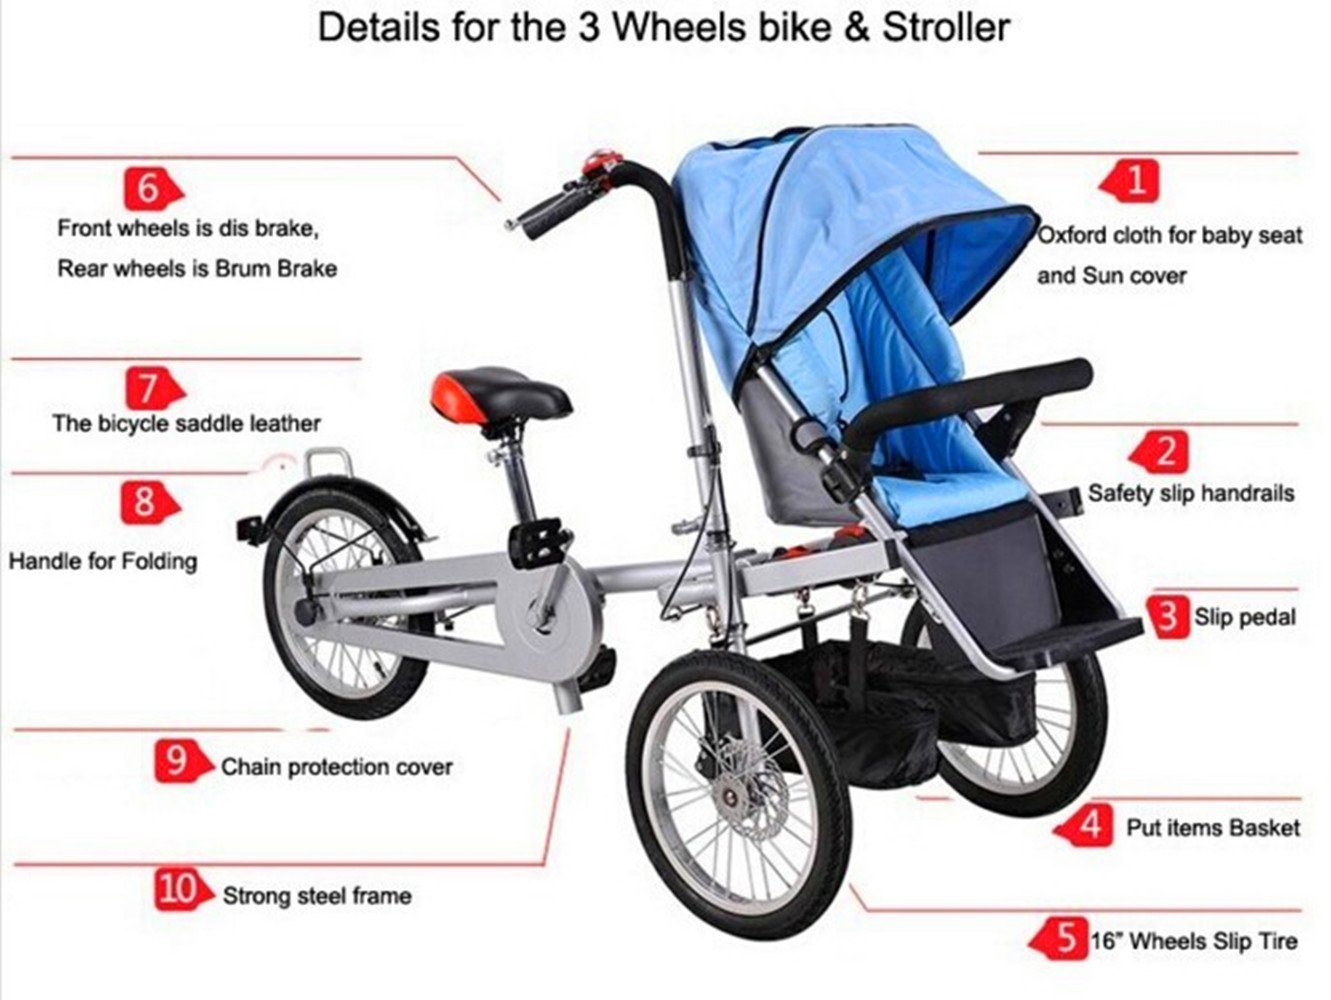 7217e59e5d0 Amazon.com : MISHOW 3 in 1 Mother Bicycle Baby Stroller Pushchair 3 Wheel  Bike Folding Child Cargo Bicycle MBTS01R : Baby